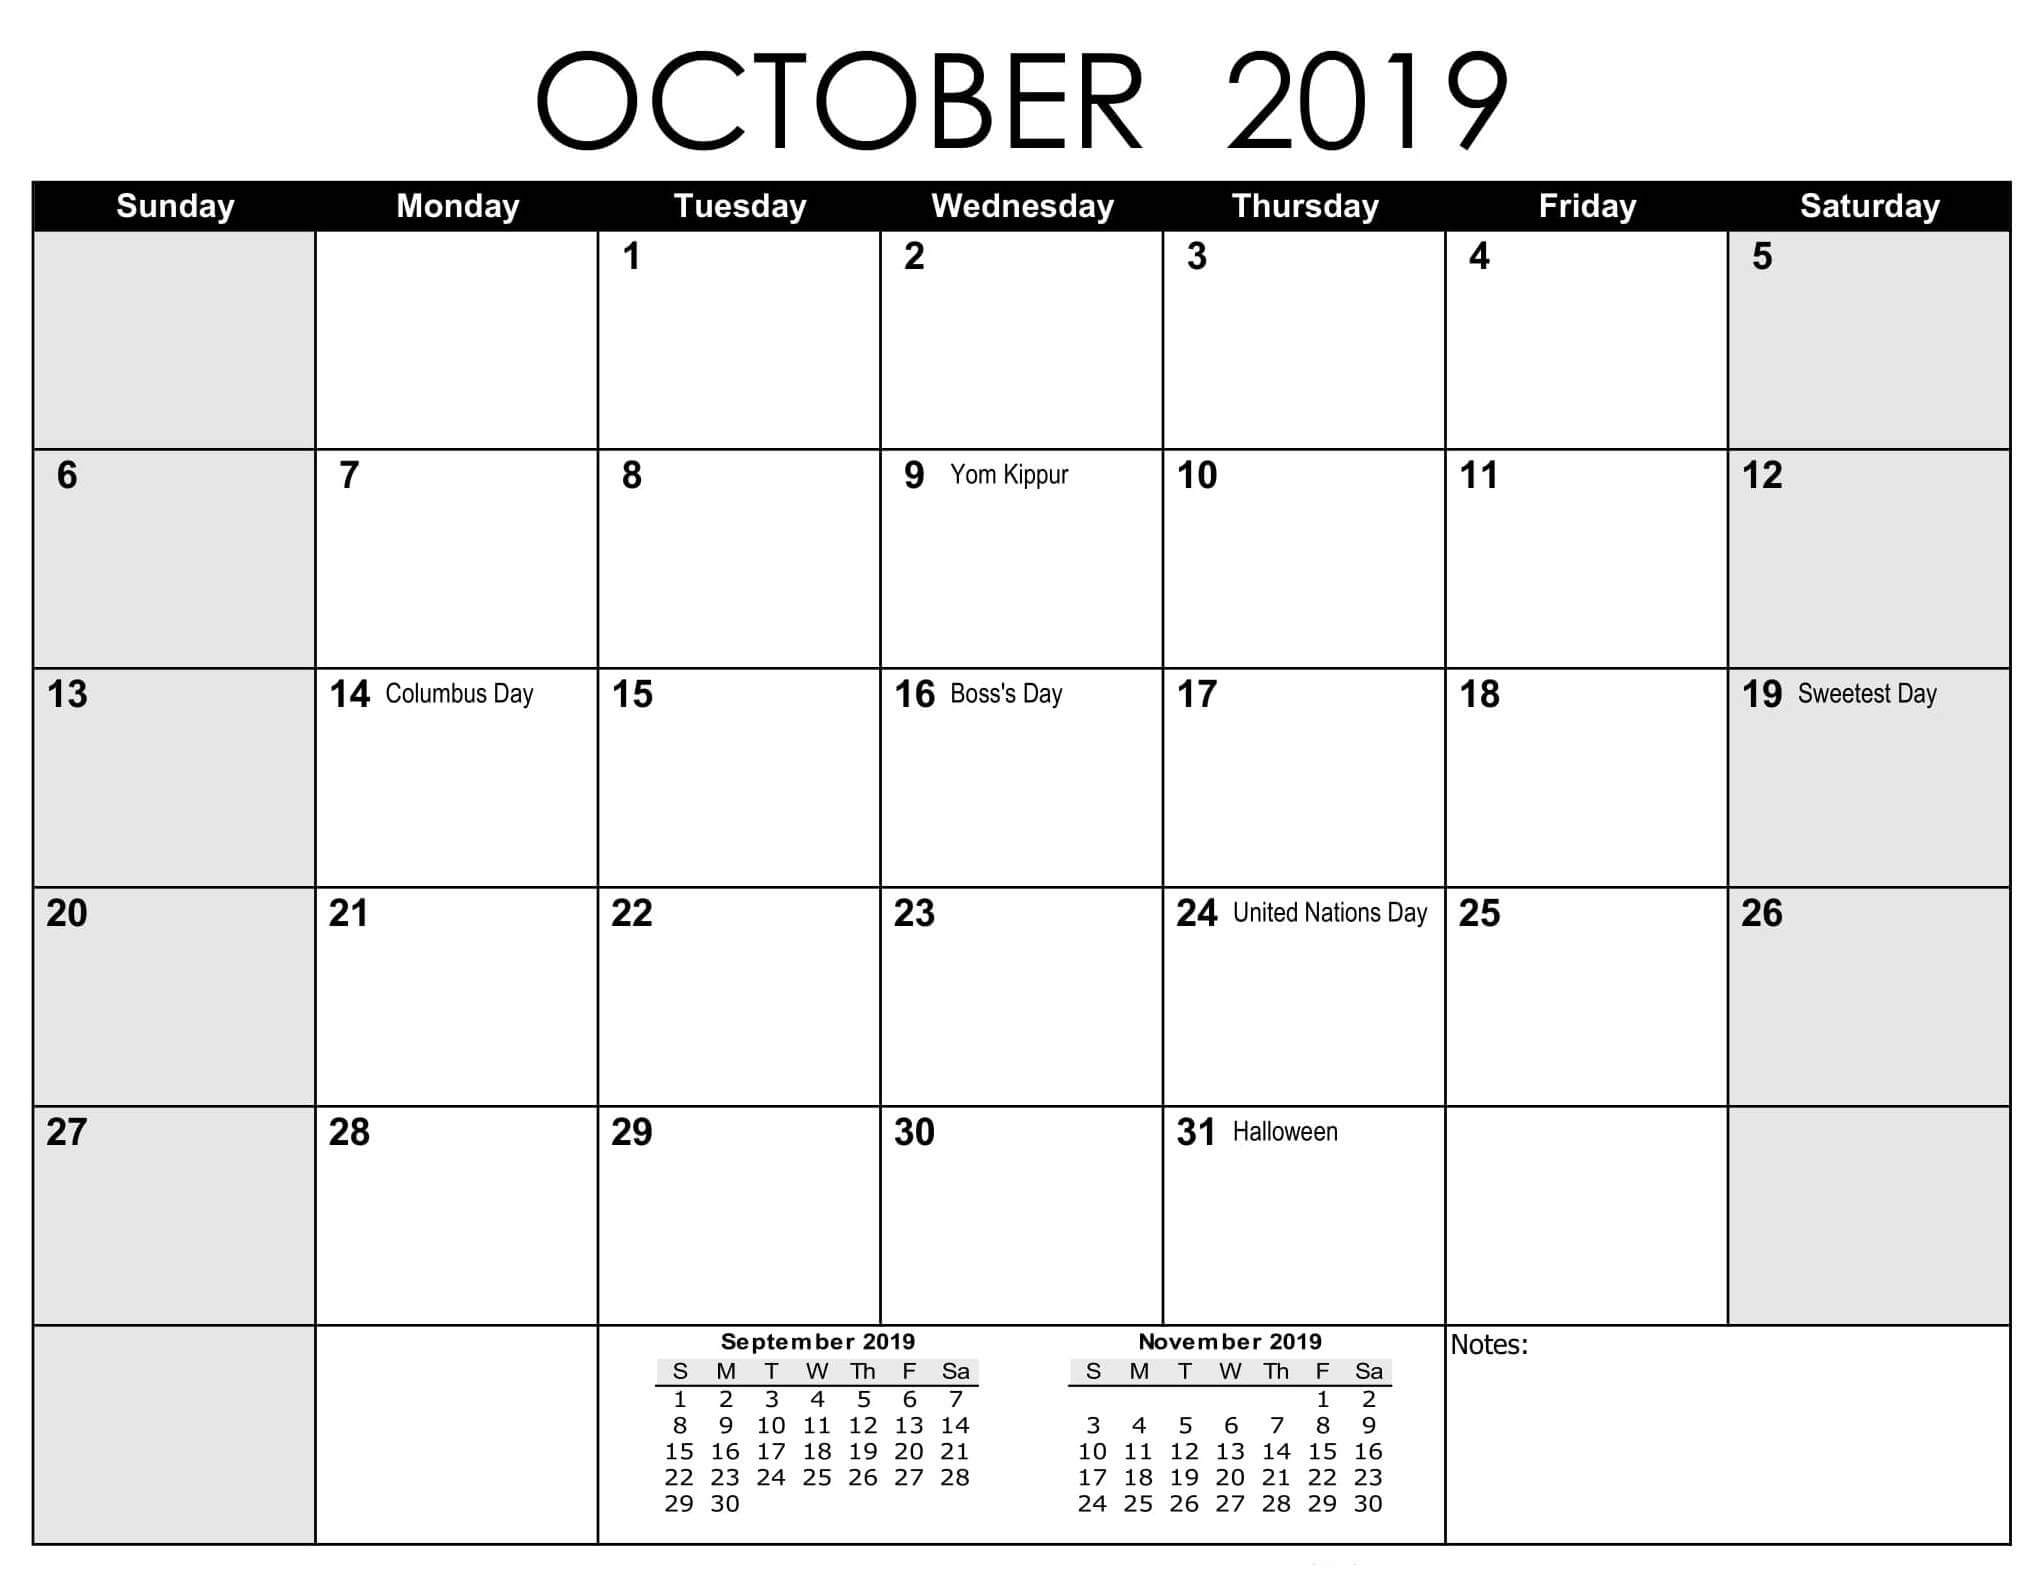 Calendar October 2019 with Holidays